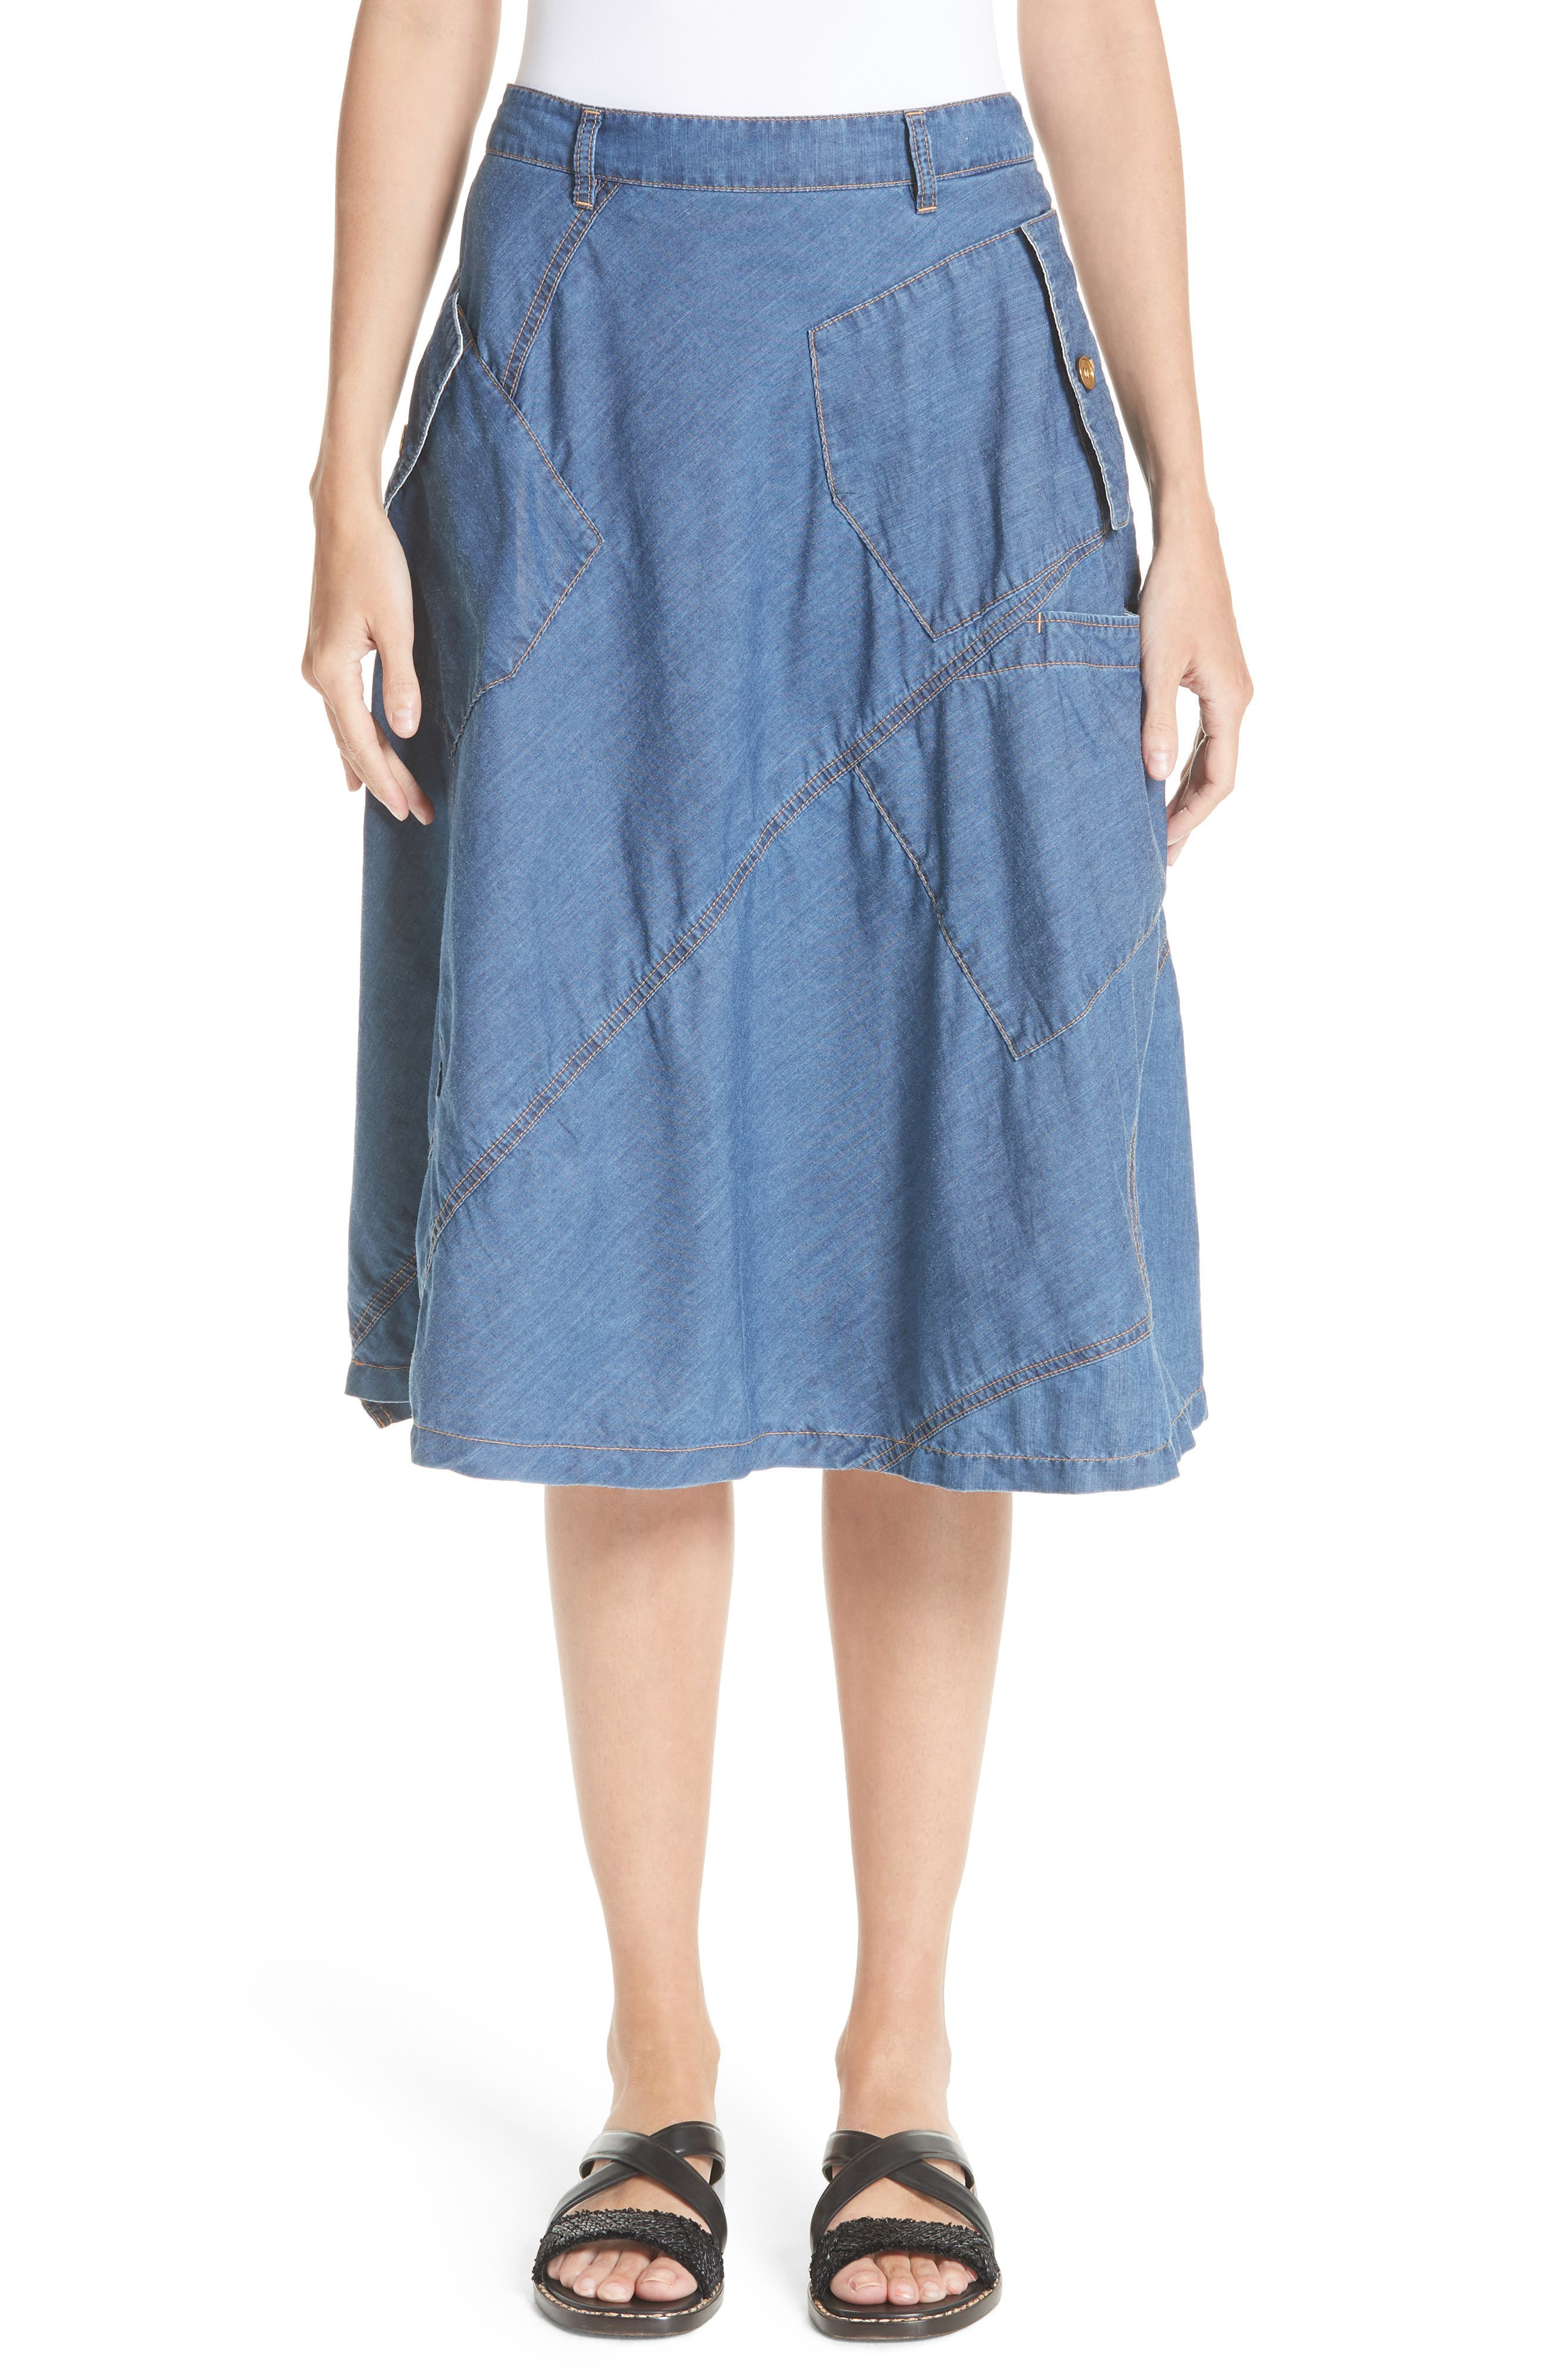 TRICOT COMME DES GARCONS CHAMBRAY & EYELET SKIRT